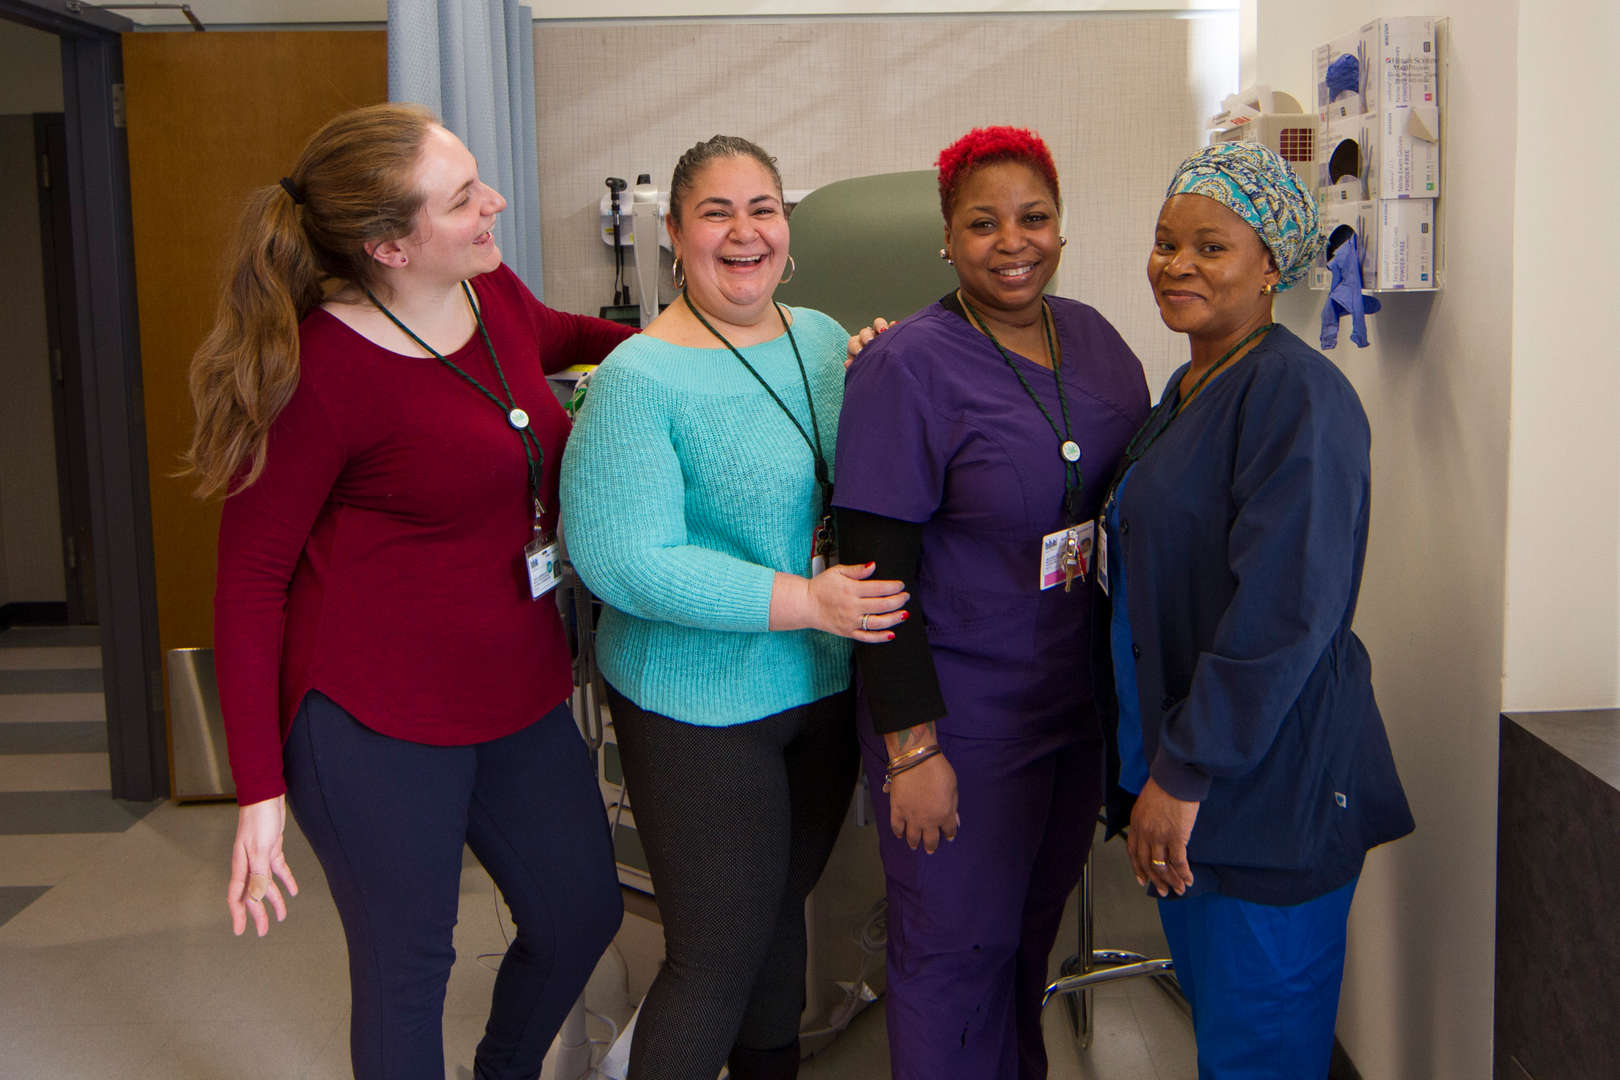 The clinic staff poses for photo